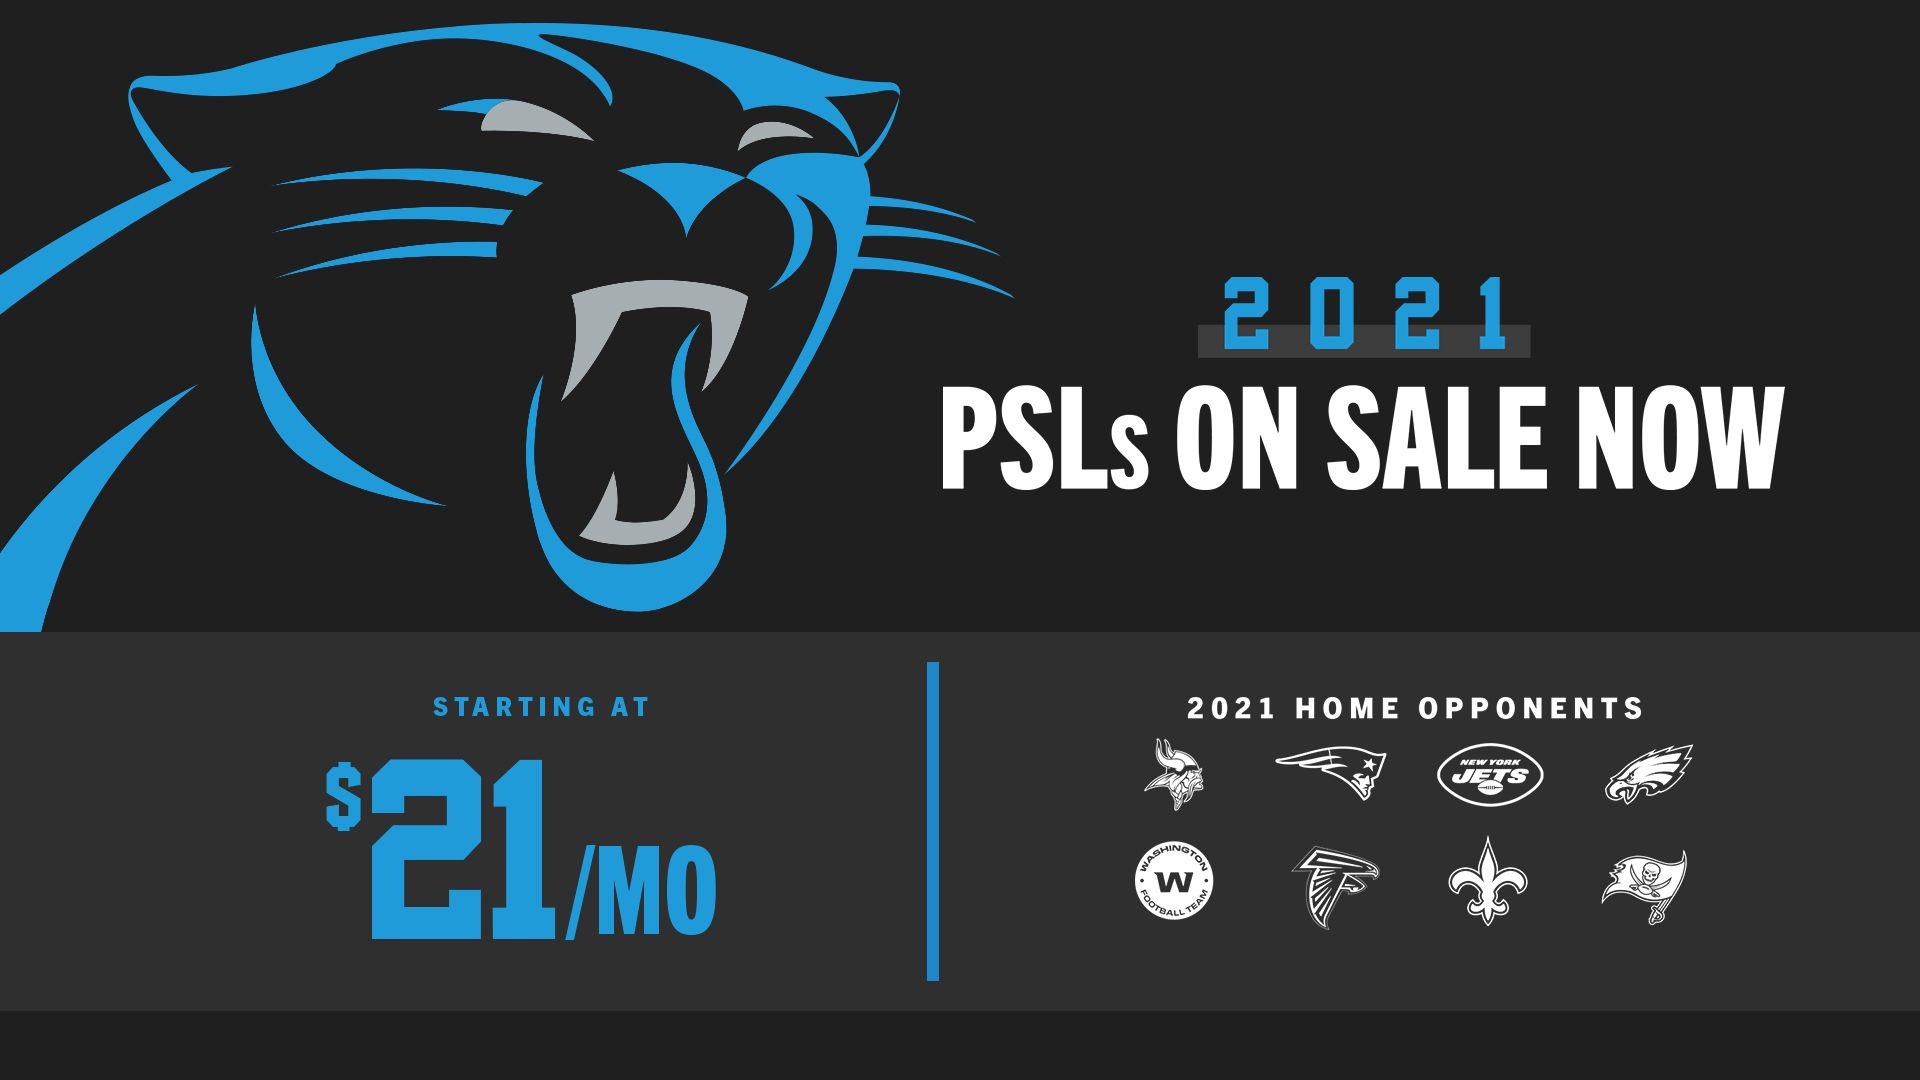 PSLs / Season Tickets starting at $21/month